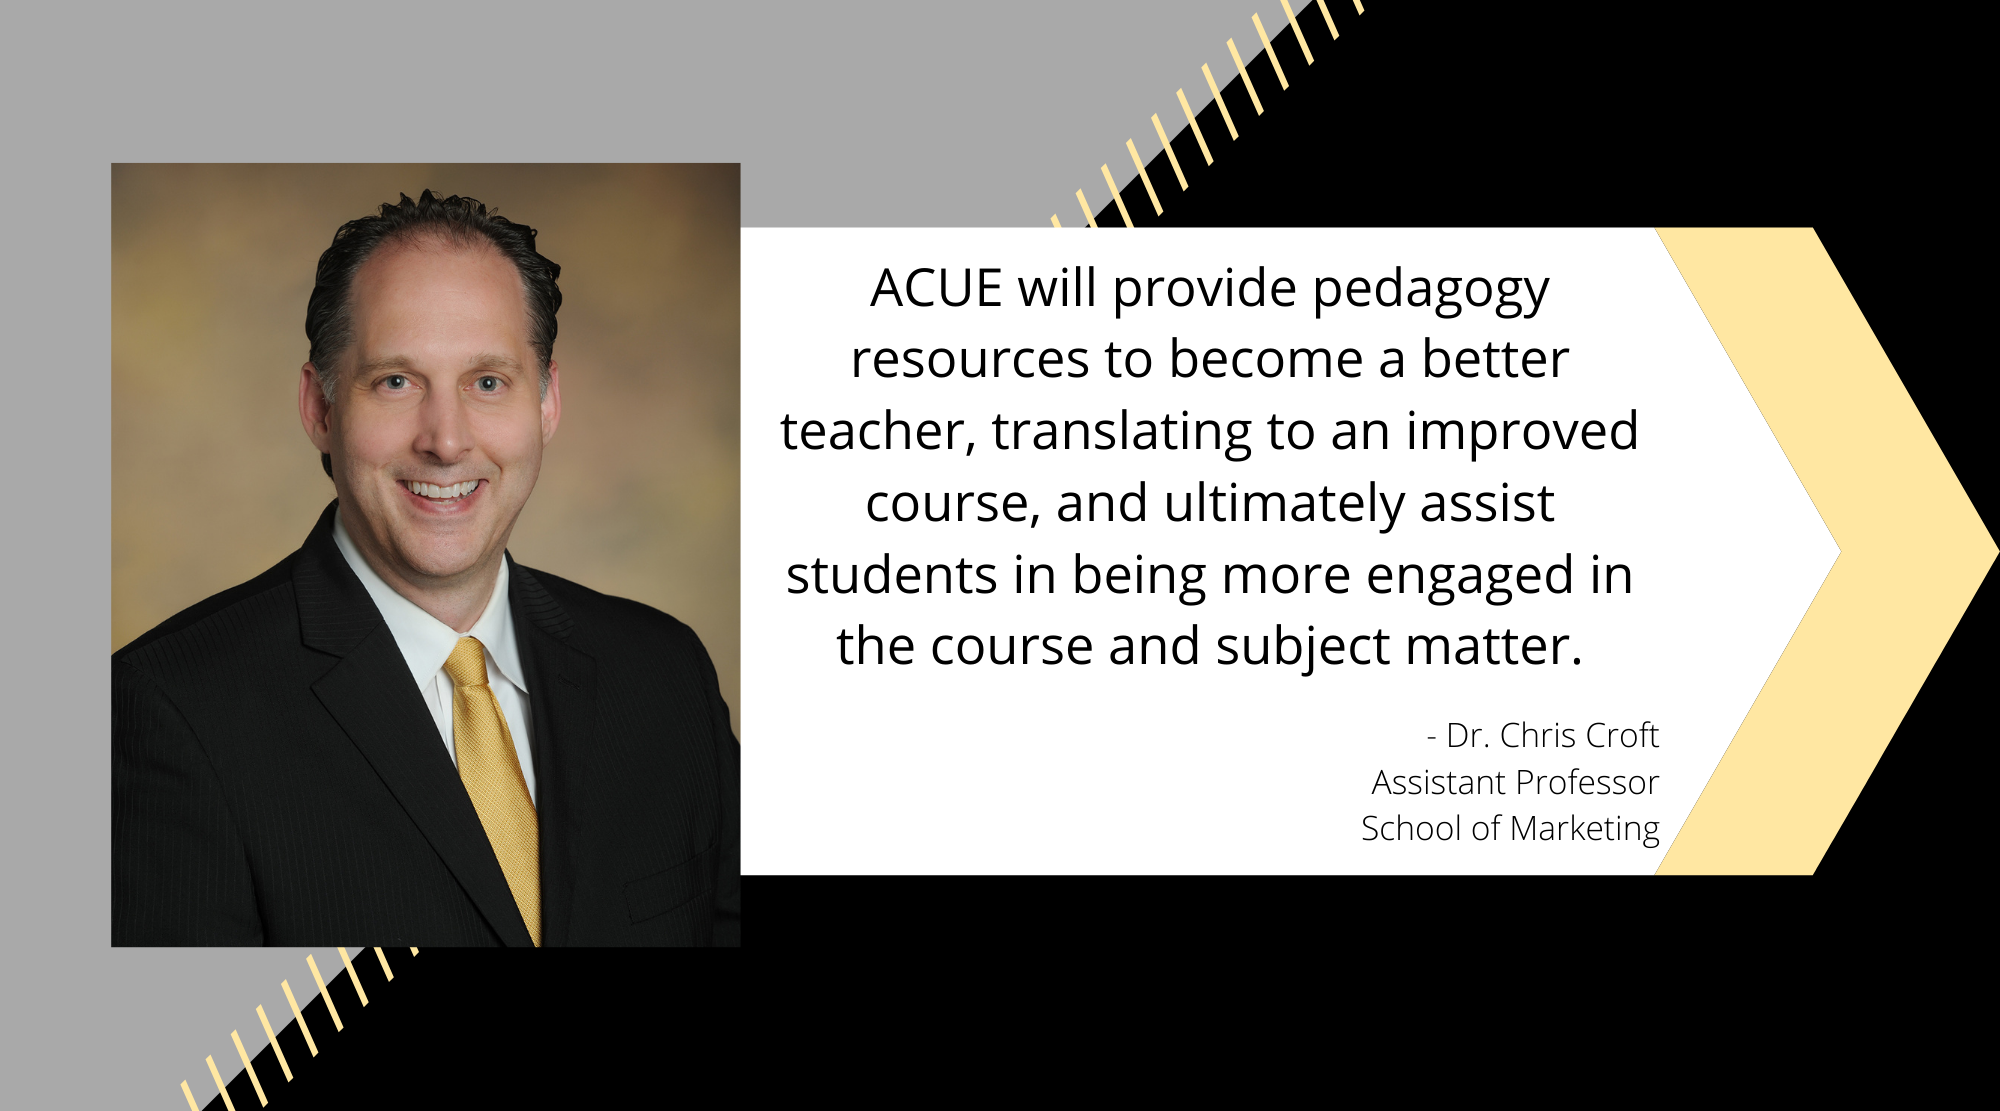 Quote from ACUE testimonial by  Dr. Chris Croft from the School of Marketing.